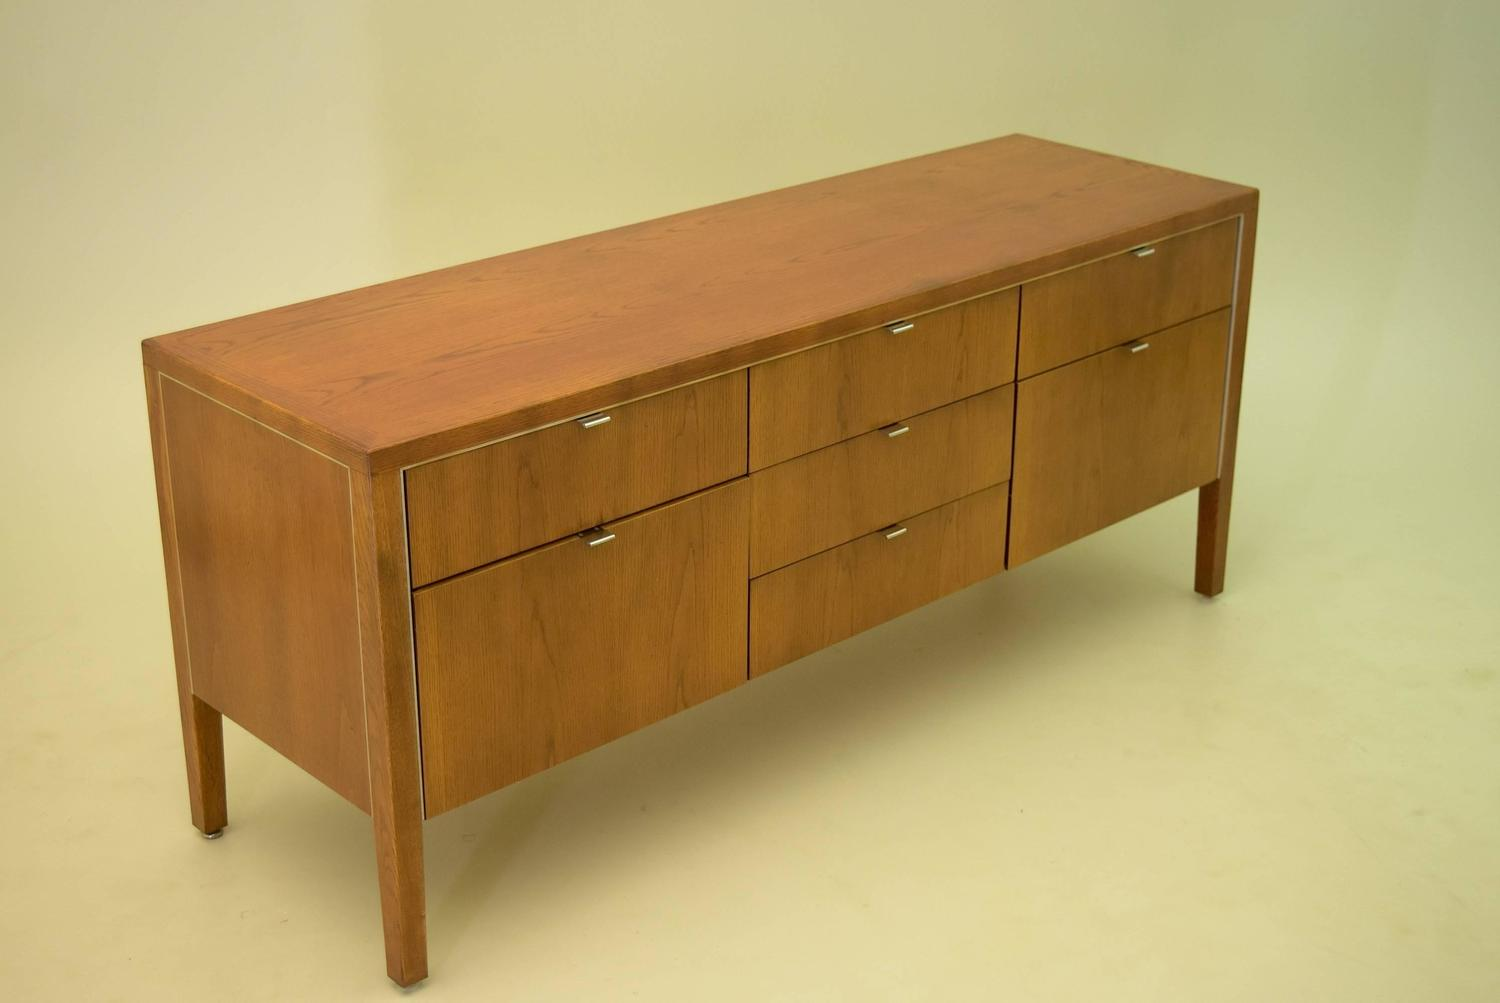 Wonderful image of Oak Credenza by Domore Stow Davis for Ashland Oil For Sale at 1stdibs with #4C2808 color and 1500x1003 pixels